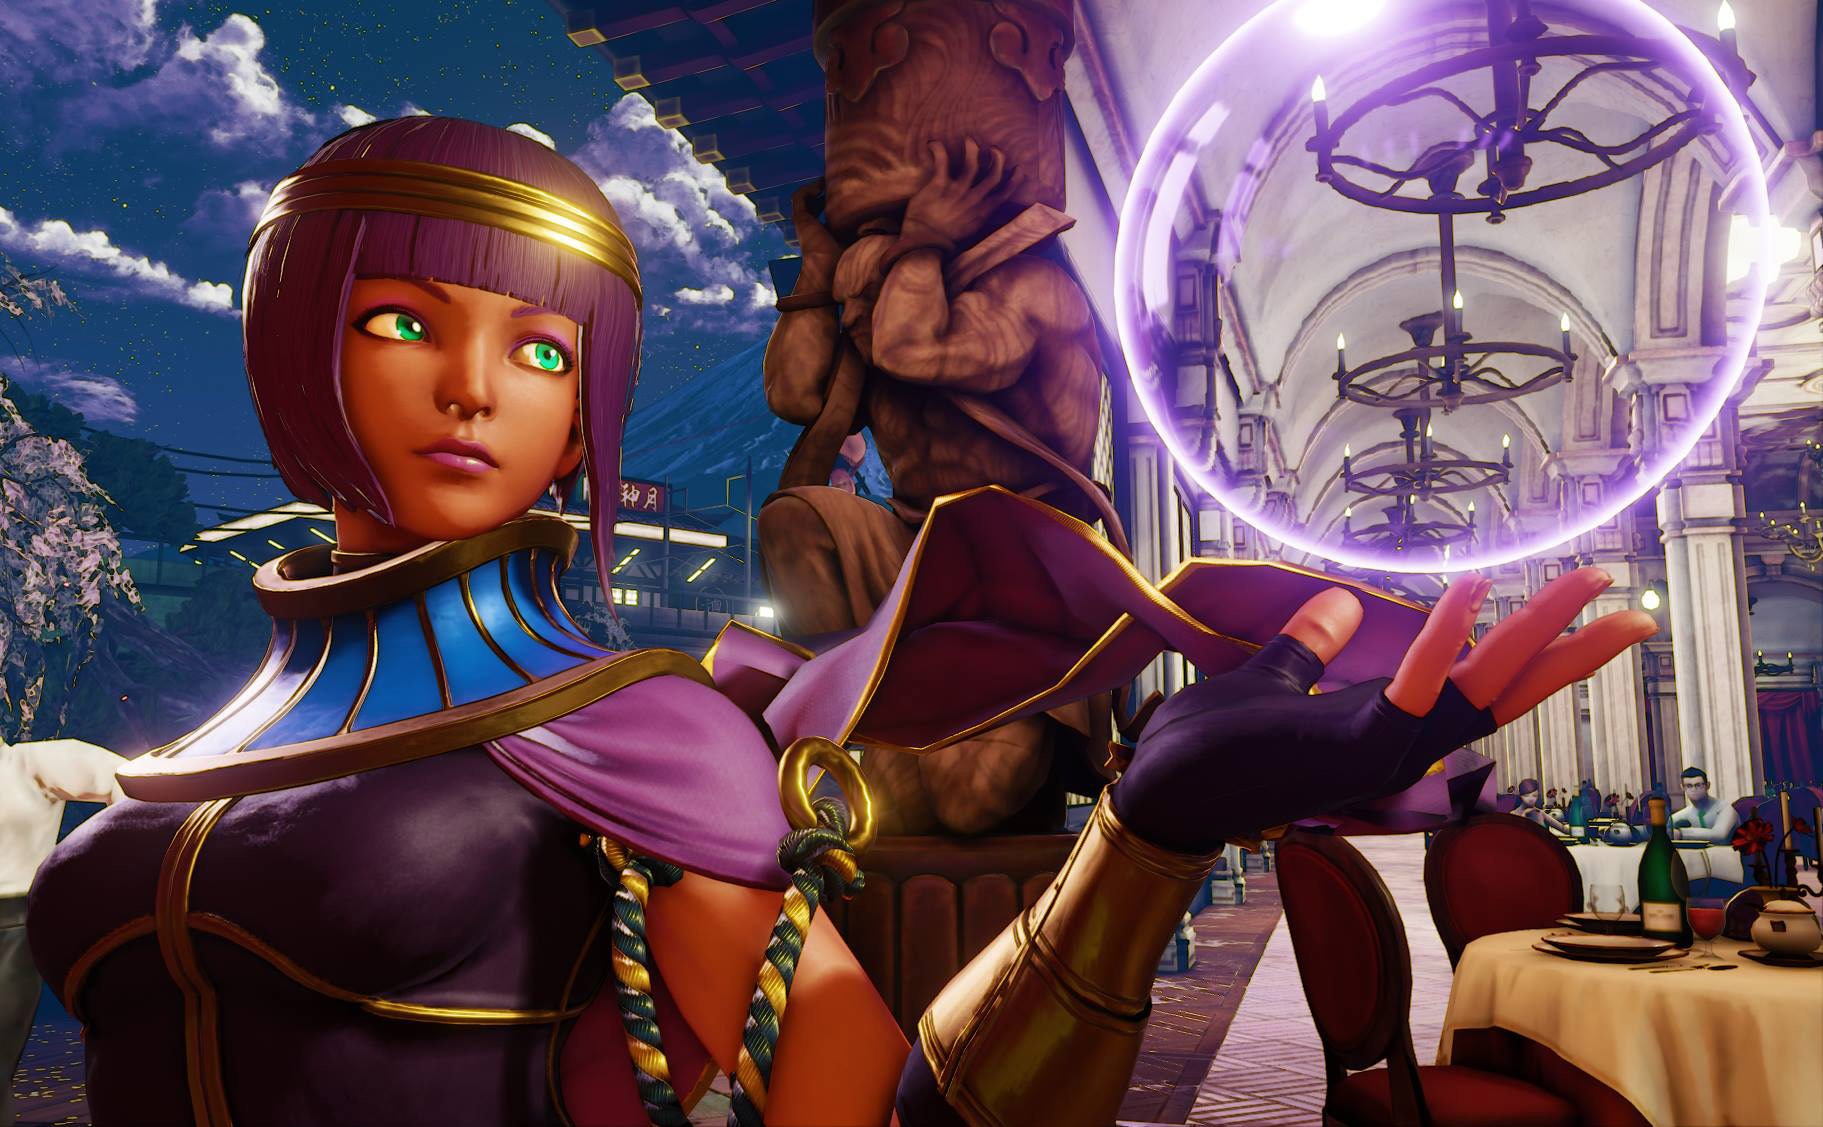 Menat in Street Fighter 5 10 out of 11 image gallery